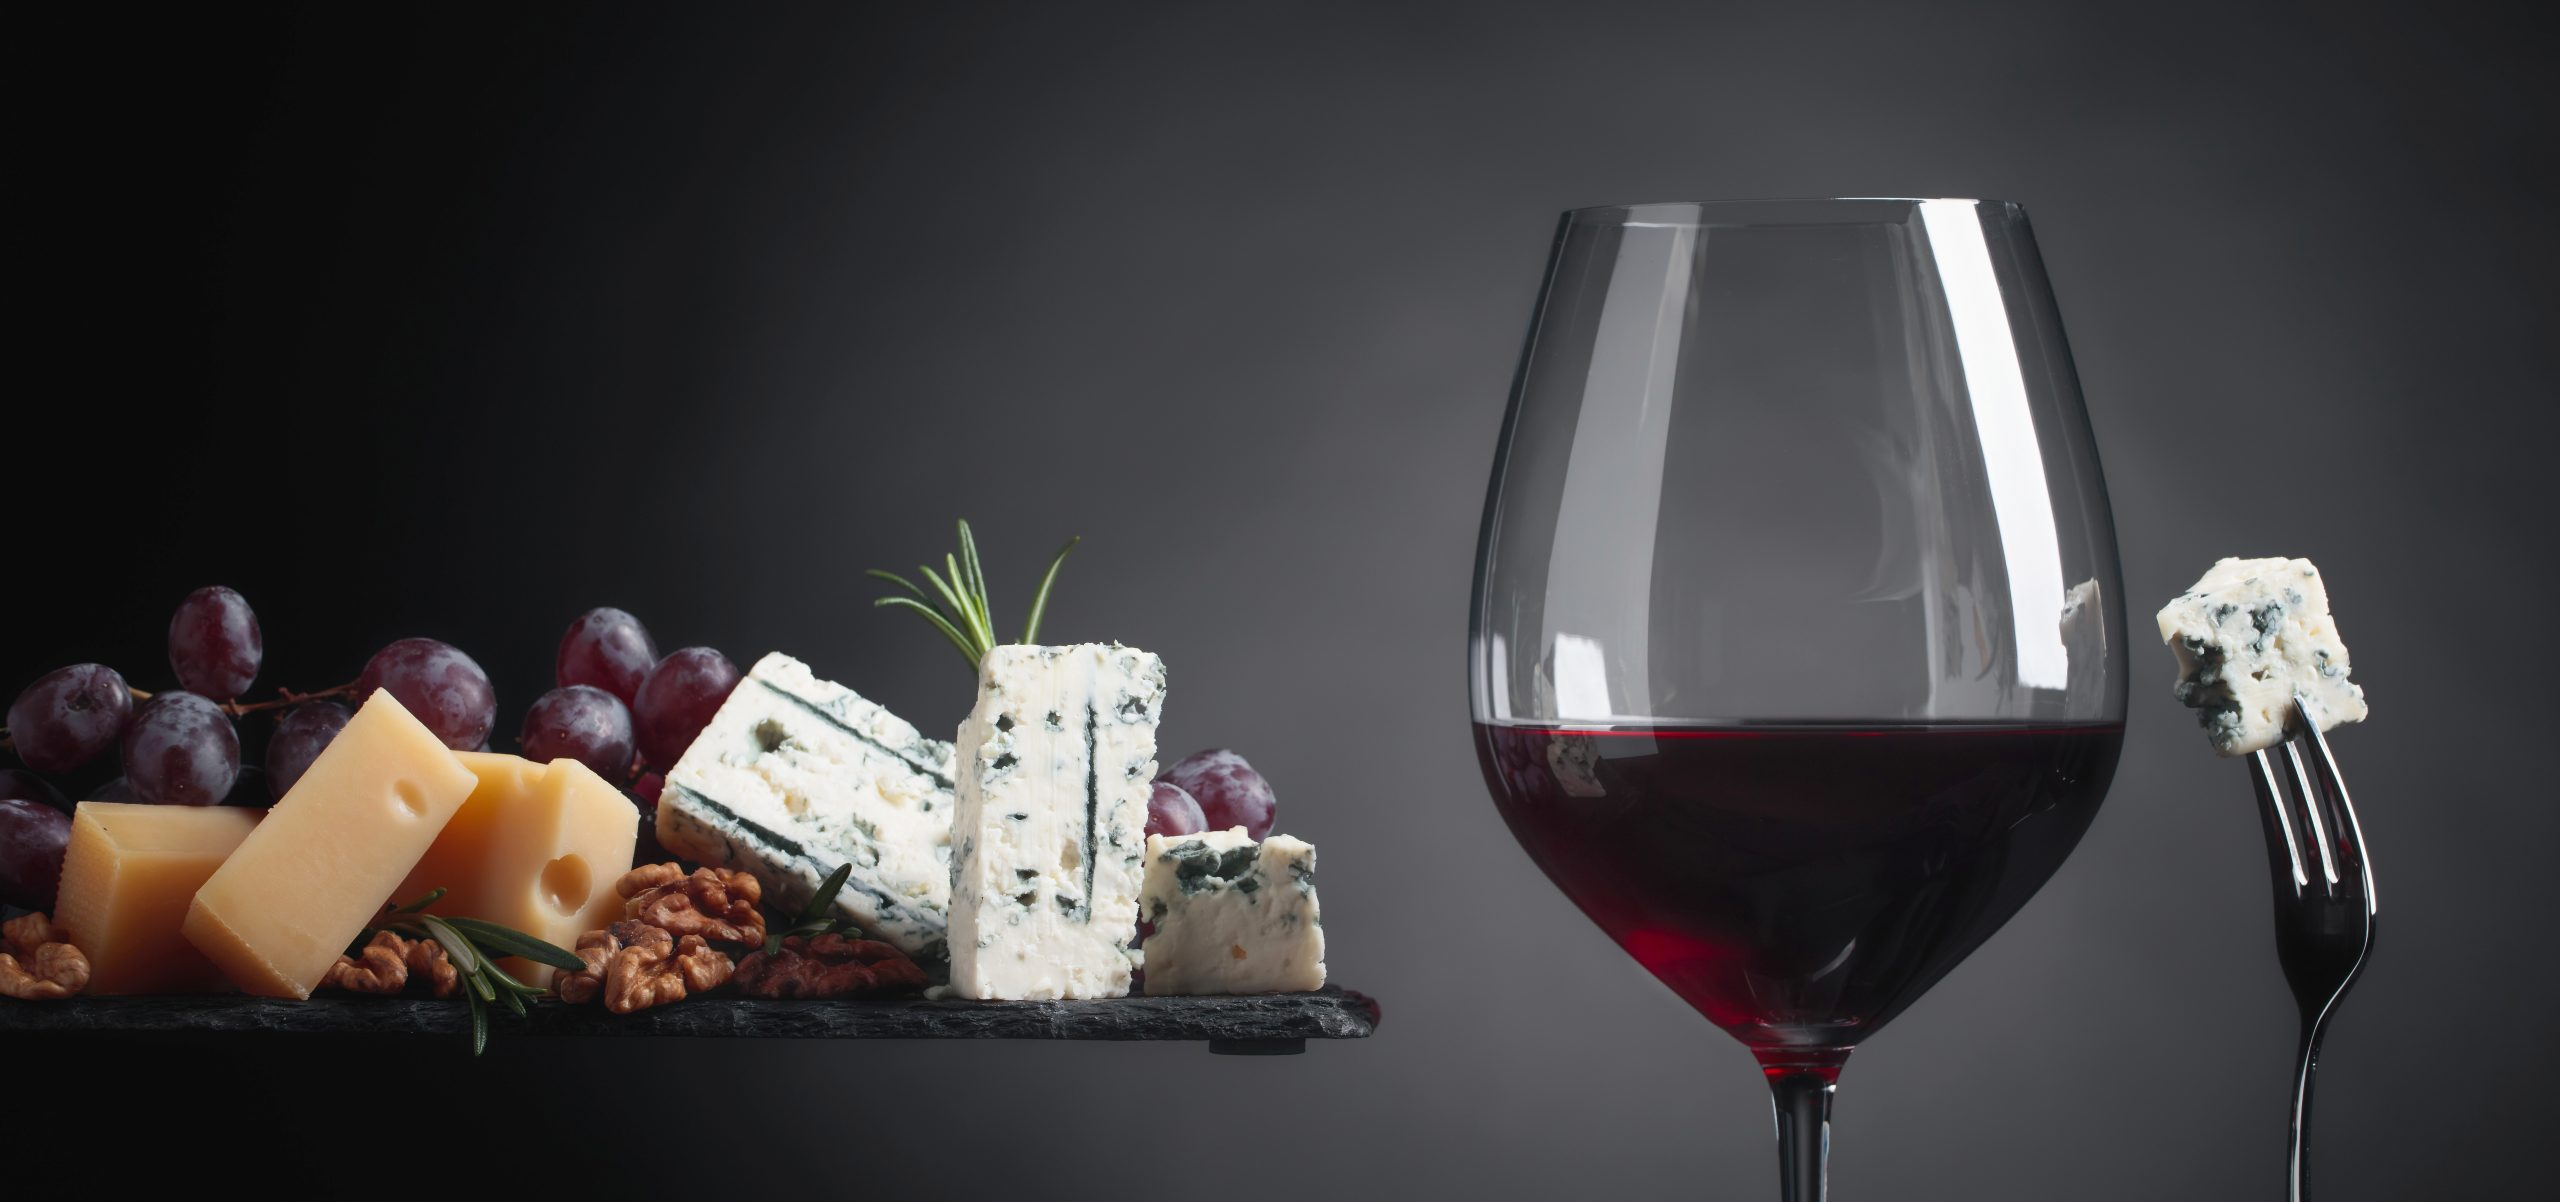 Join the Wine & Cheese Club